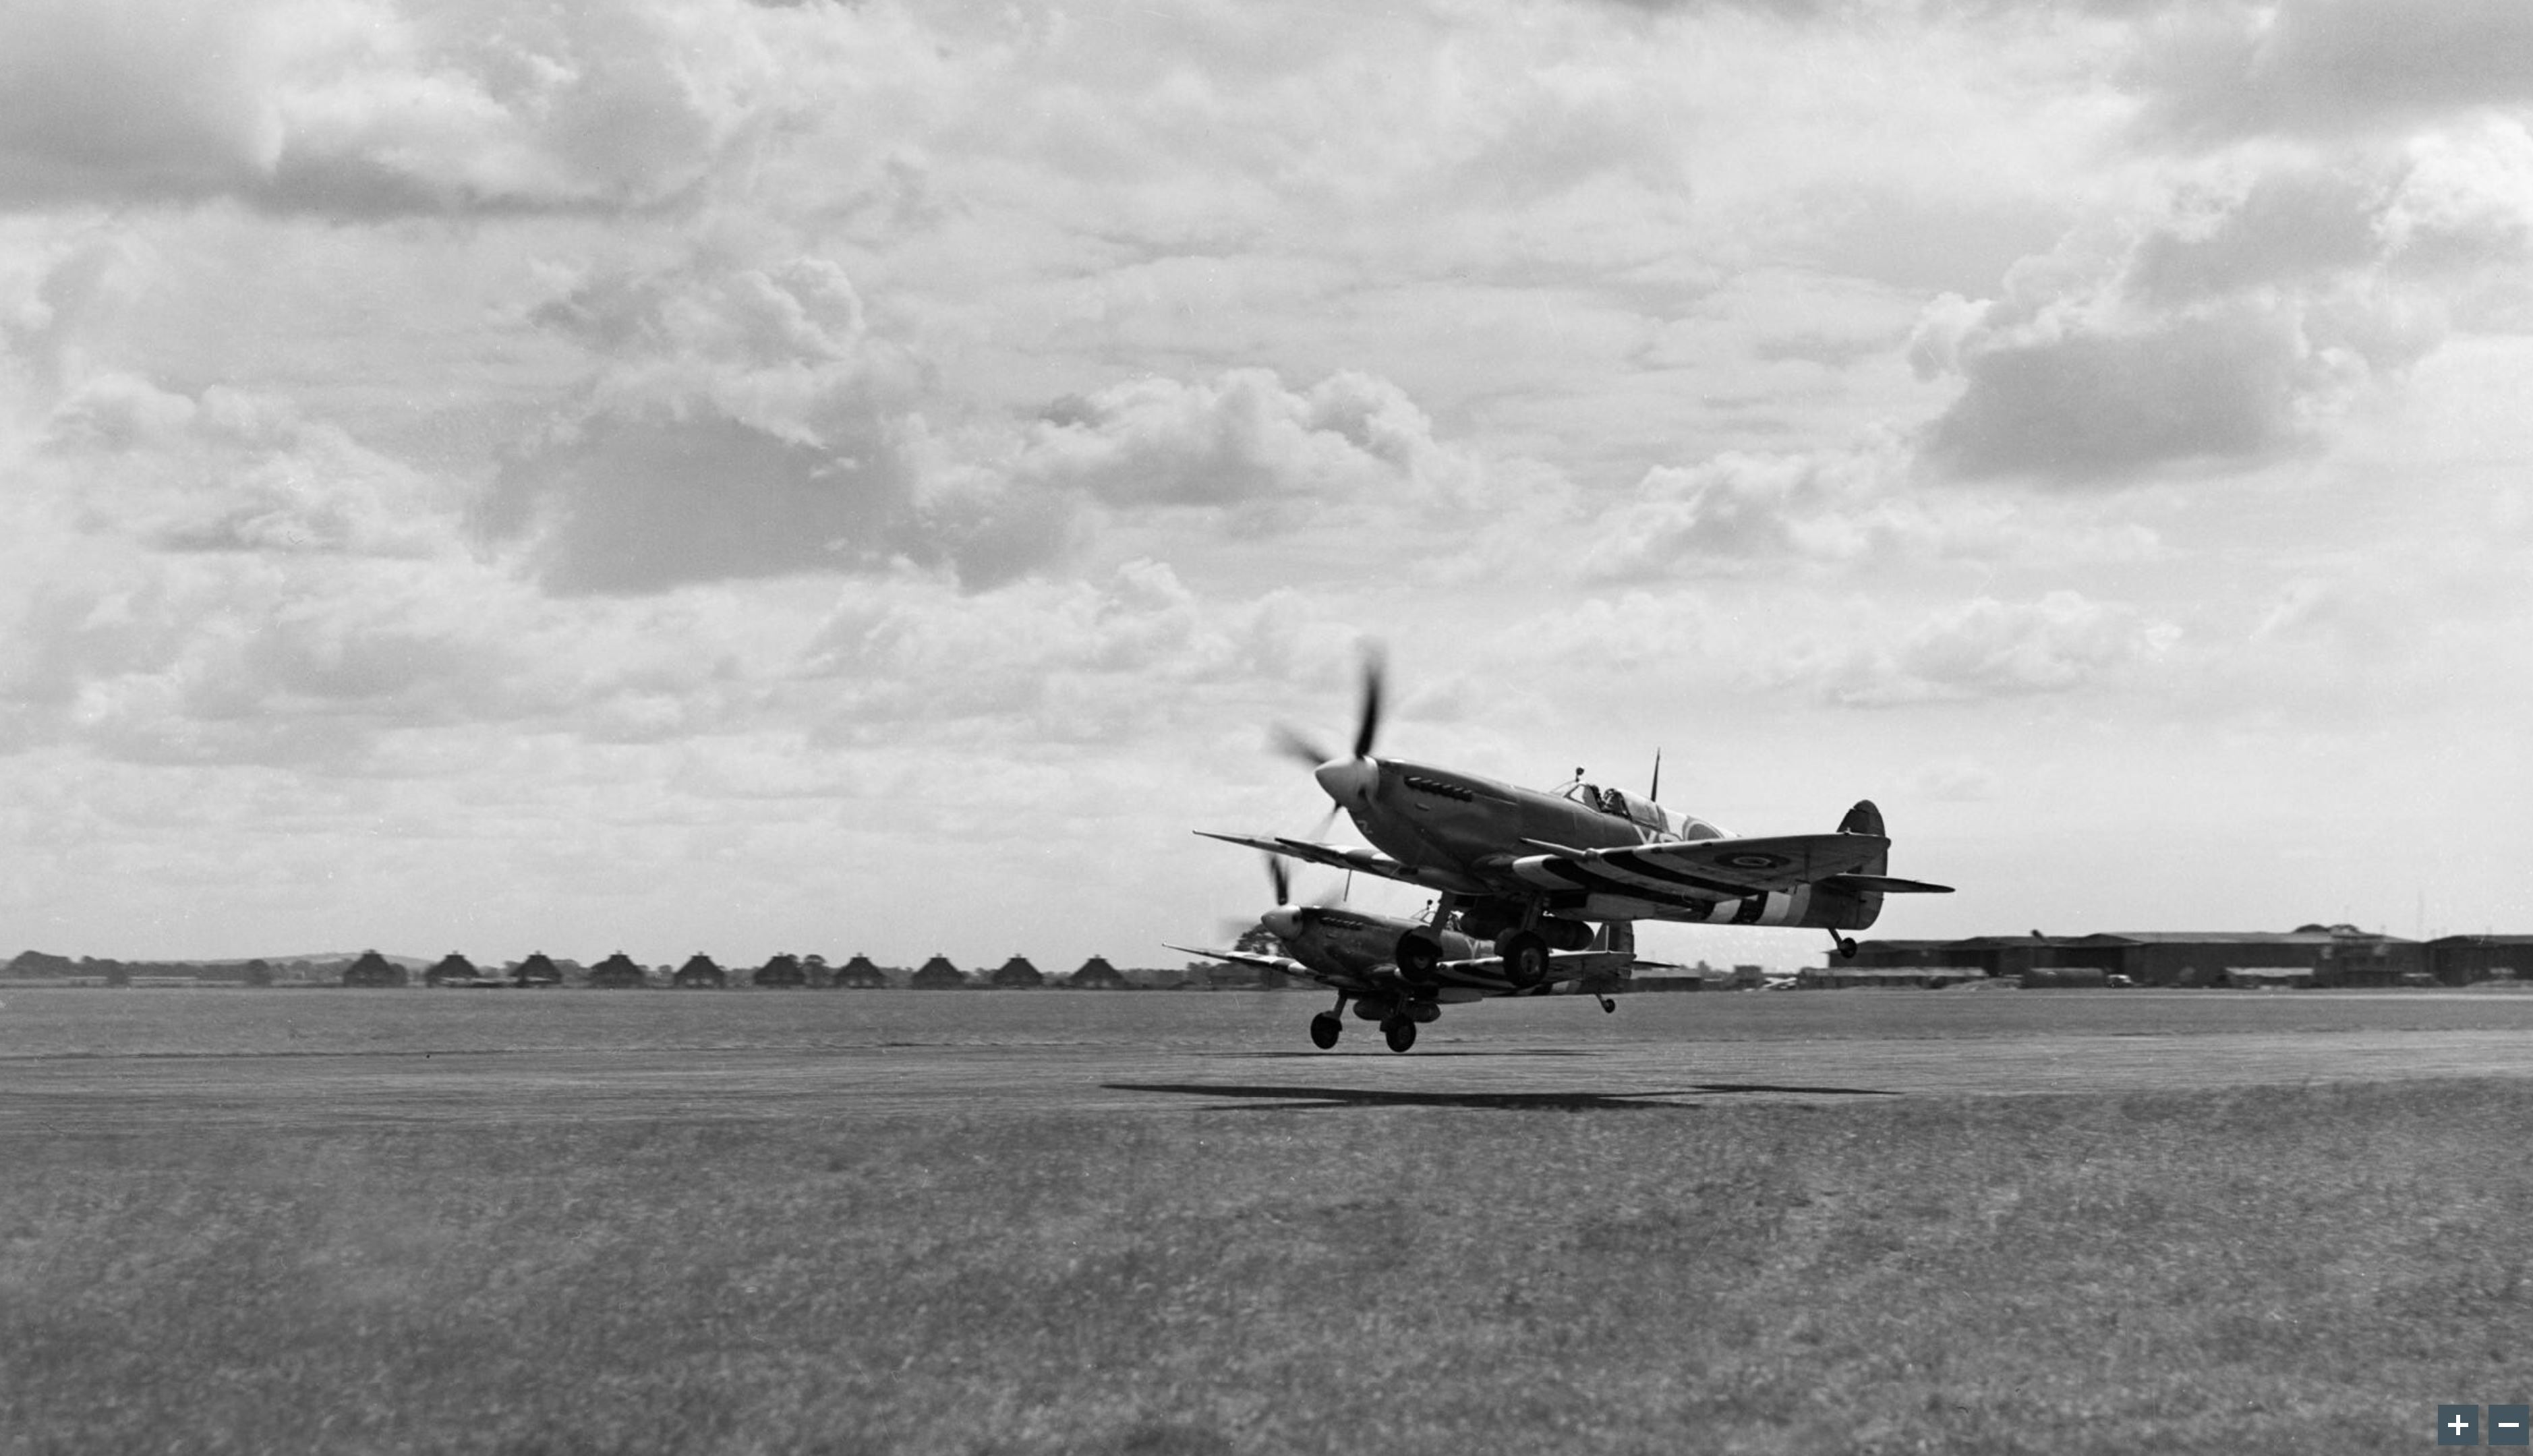 Spitfire MkIXb RCAF 442Sqn Y2Z take off from Ford Sussex IWM HU92137a